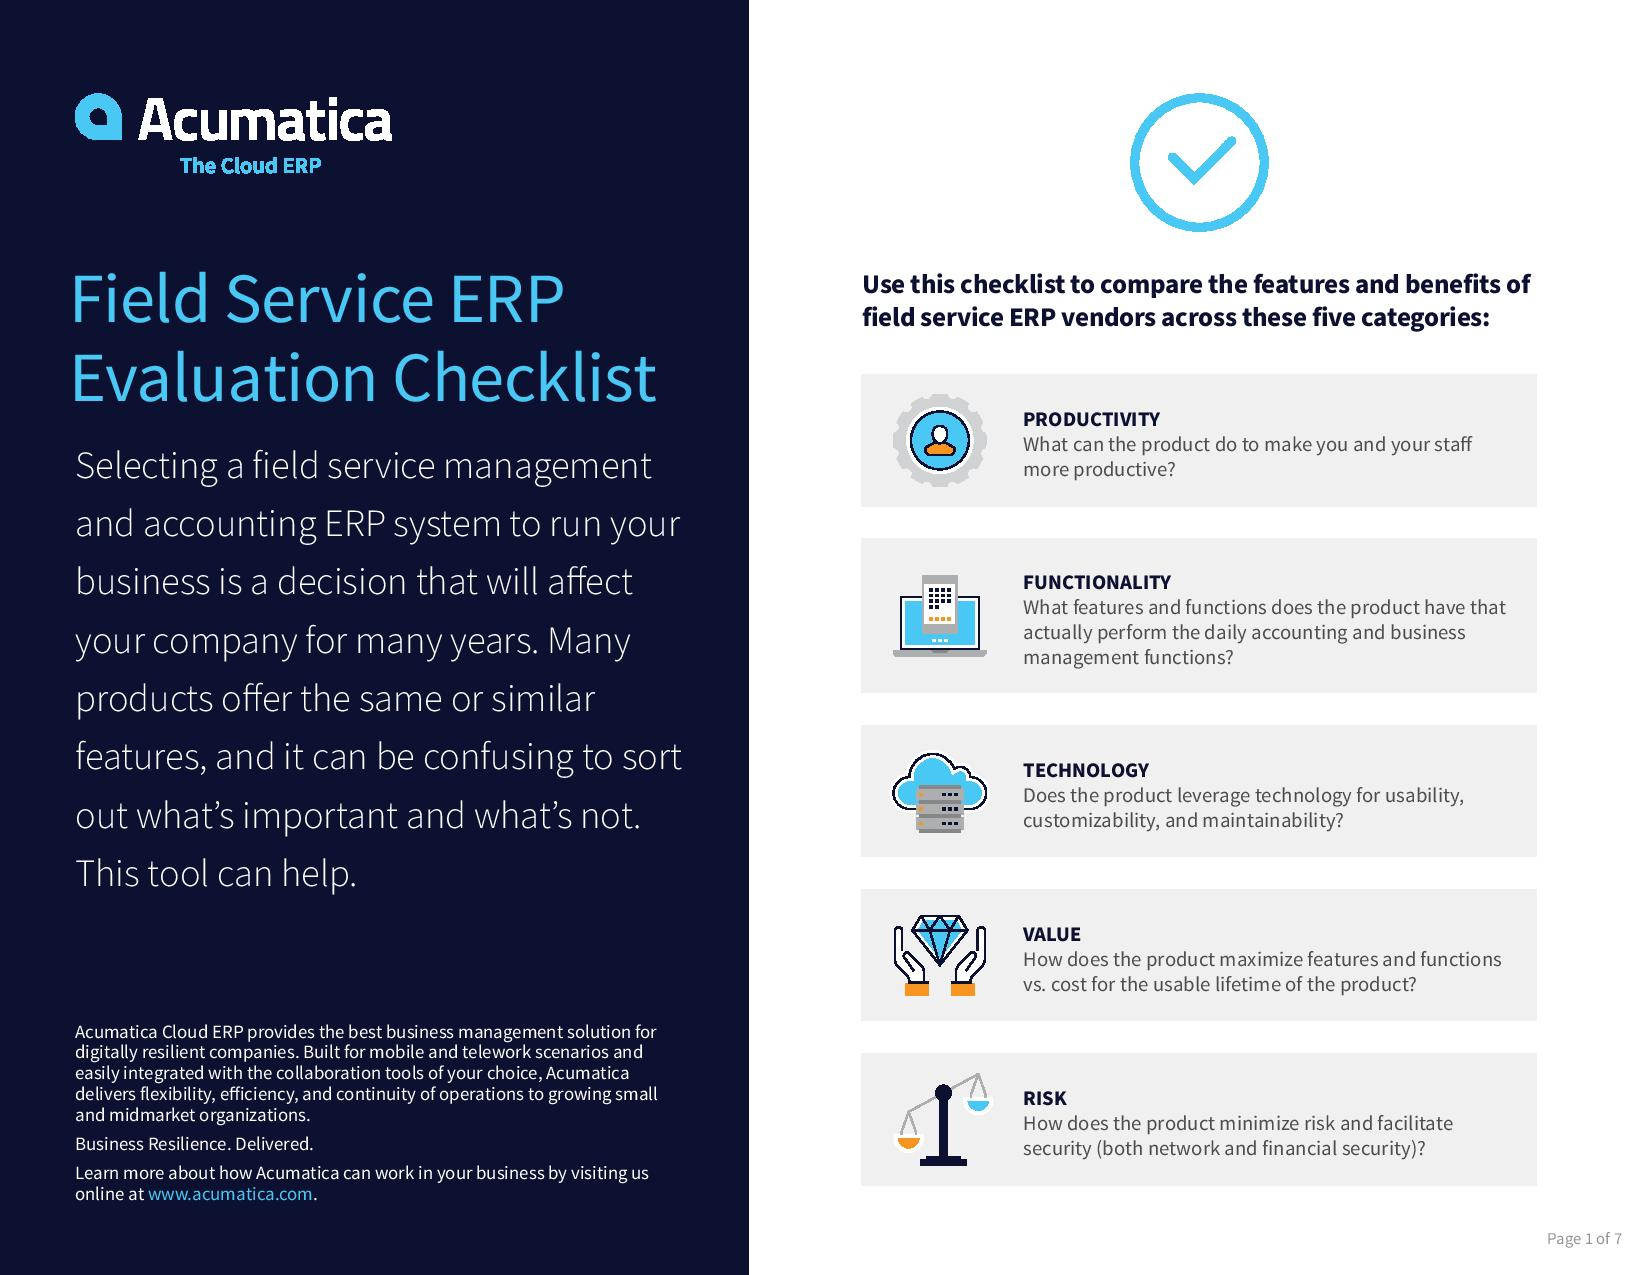 Field Service ERP: How Does Your Solution Stack Up?, page 0